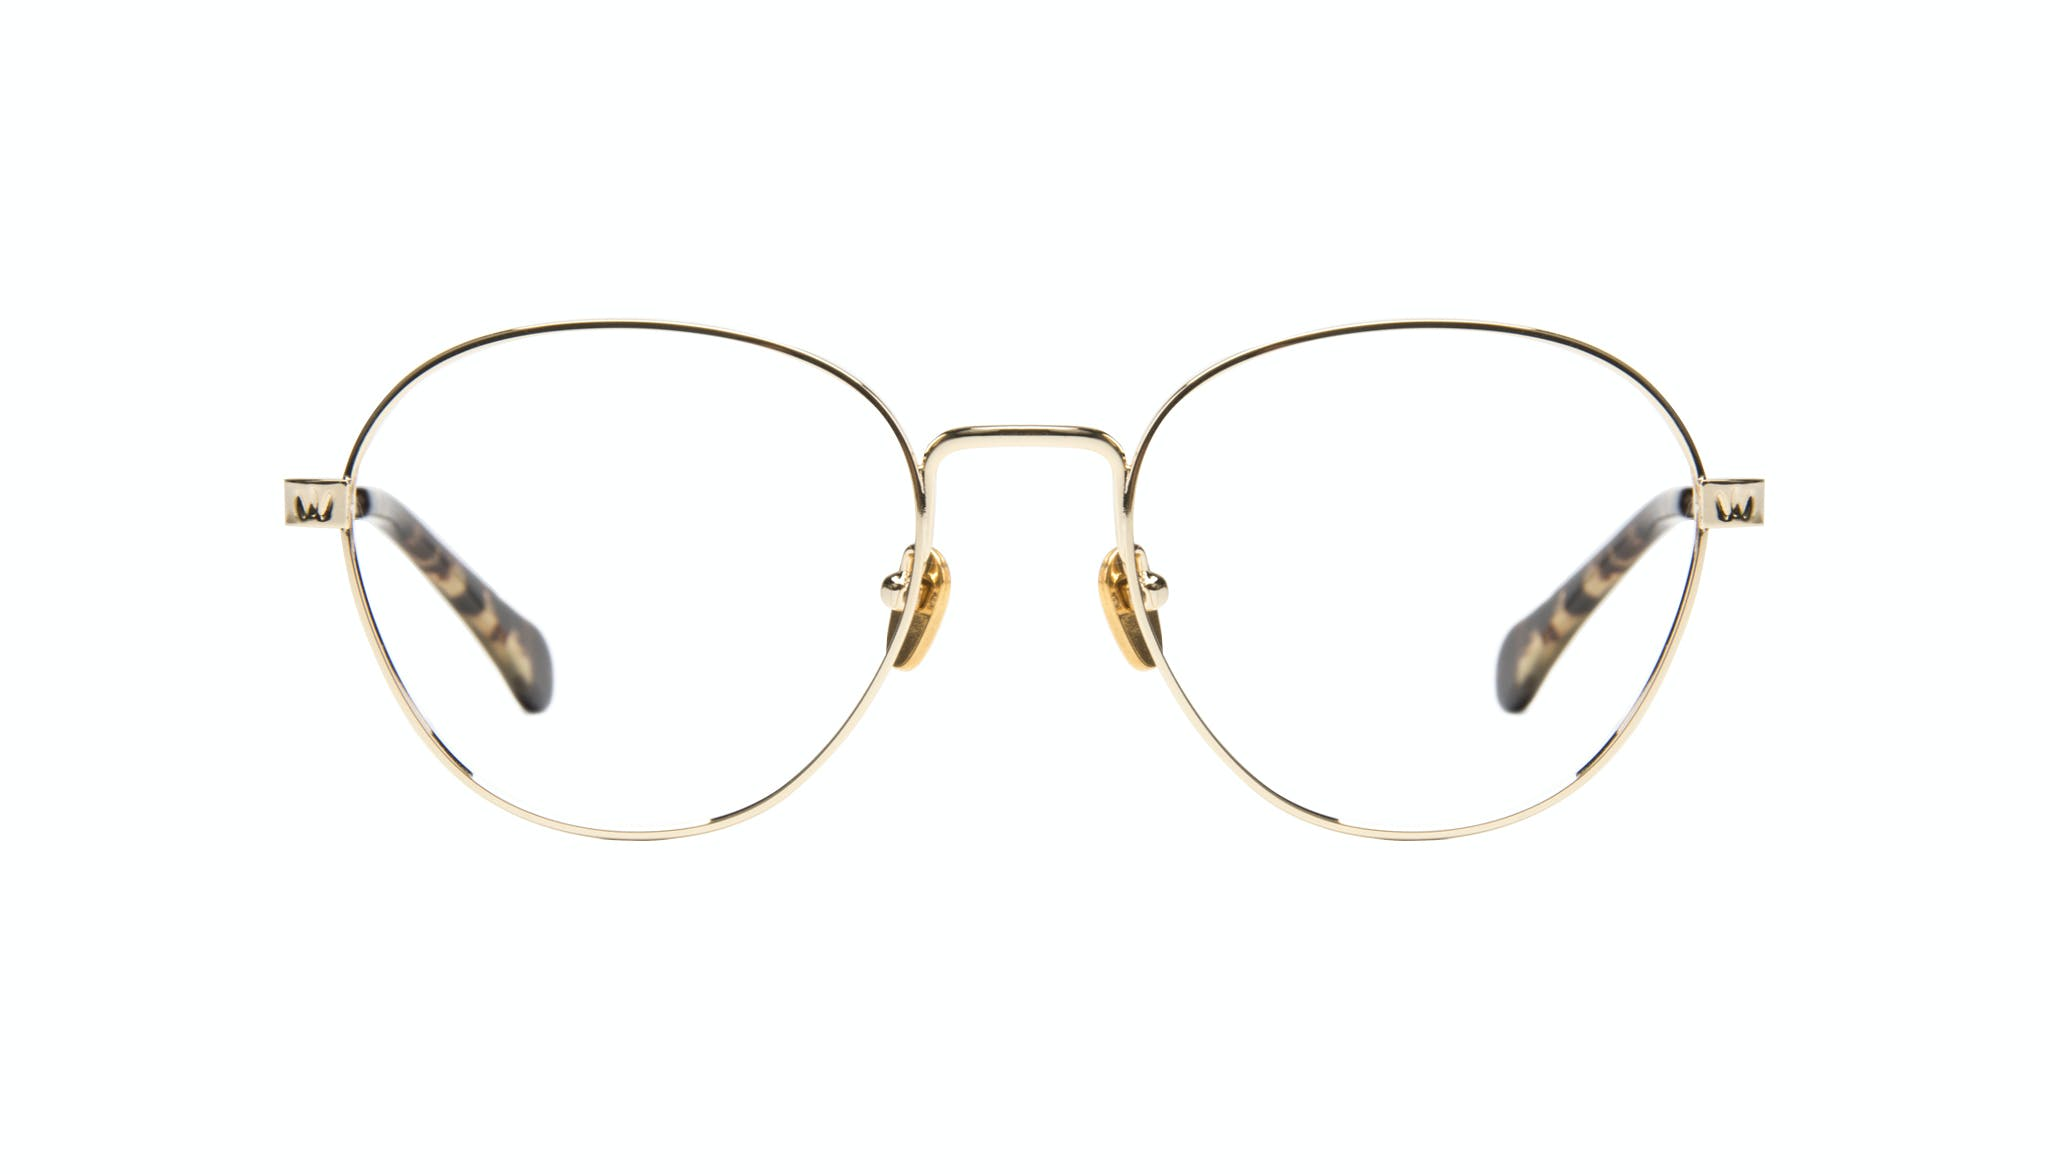 Affordable Fashion Glasses Round Eyeglasses Women Brace gold Front